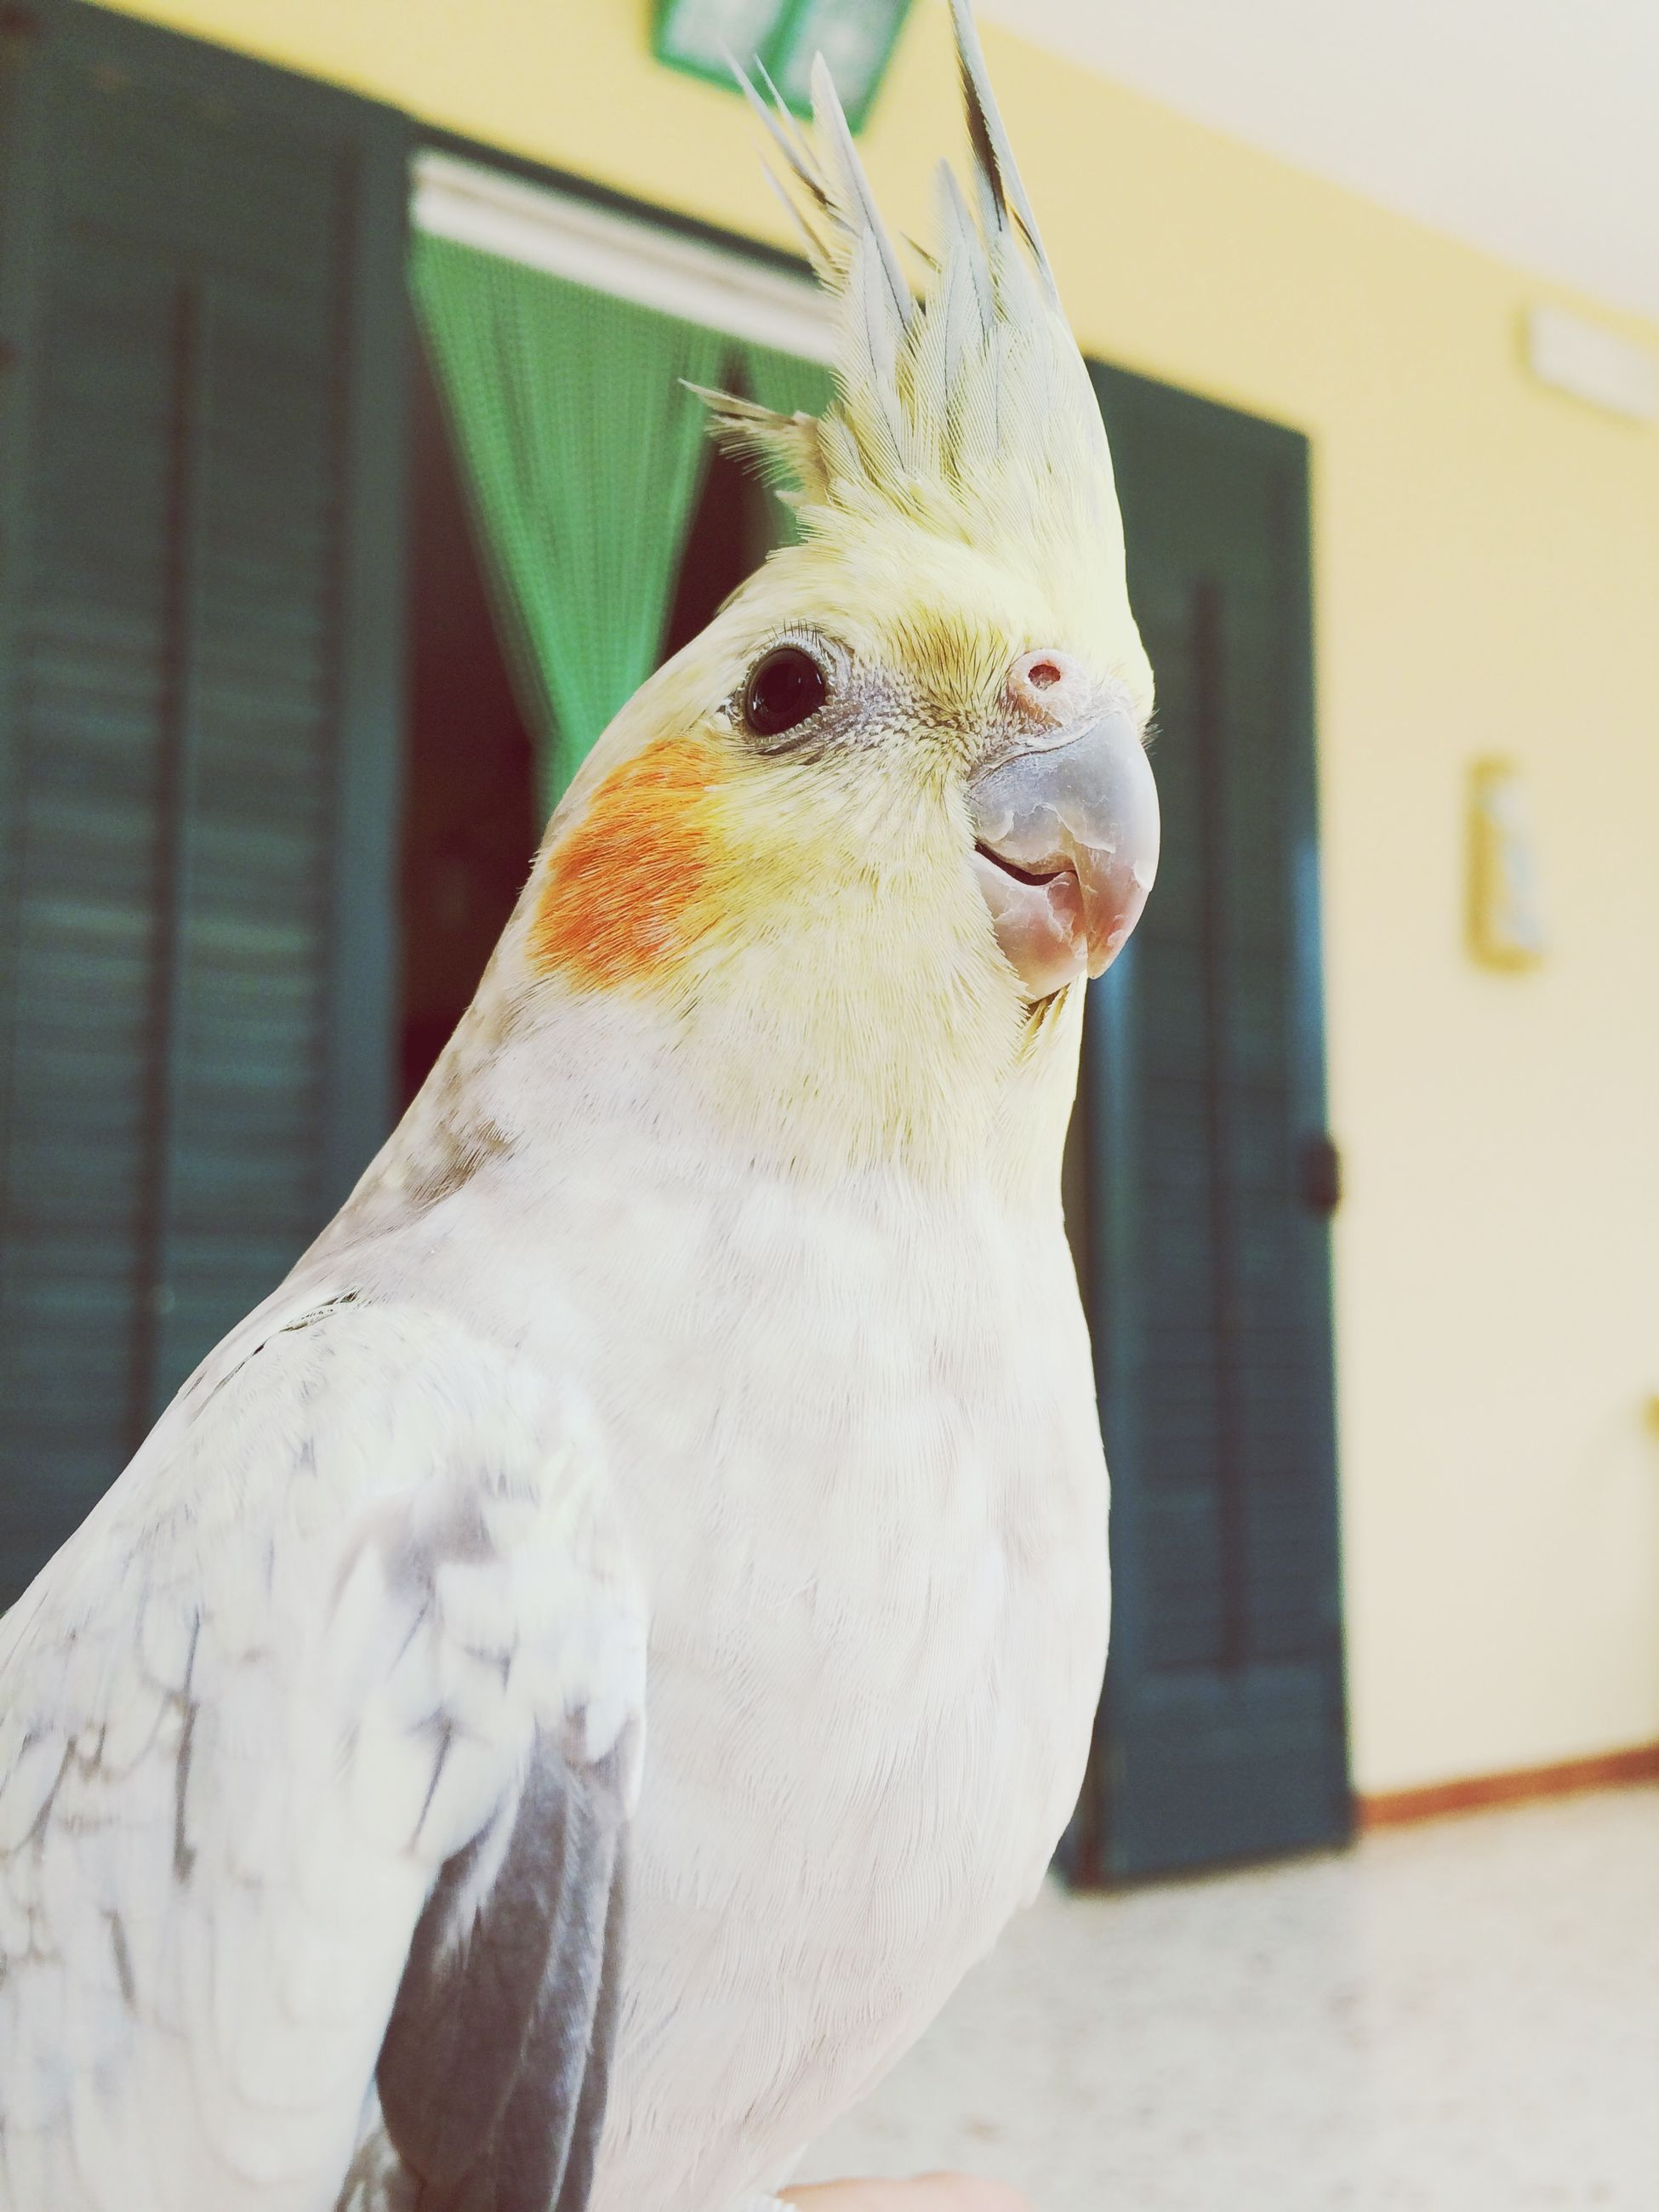 animal themes, one animal, bird, animals in the wild, wildlife, focus on foreground, close-up, animal head, beak, indoors, perching, white color, built structure, no people, day, zoology, looking away, domestic animals, architecture